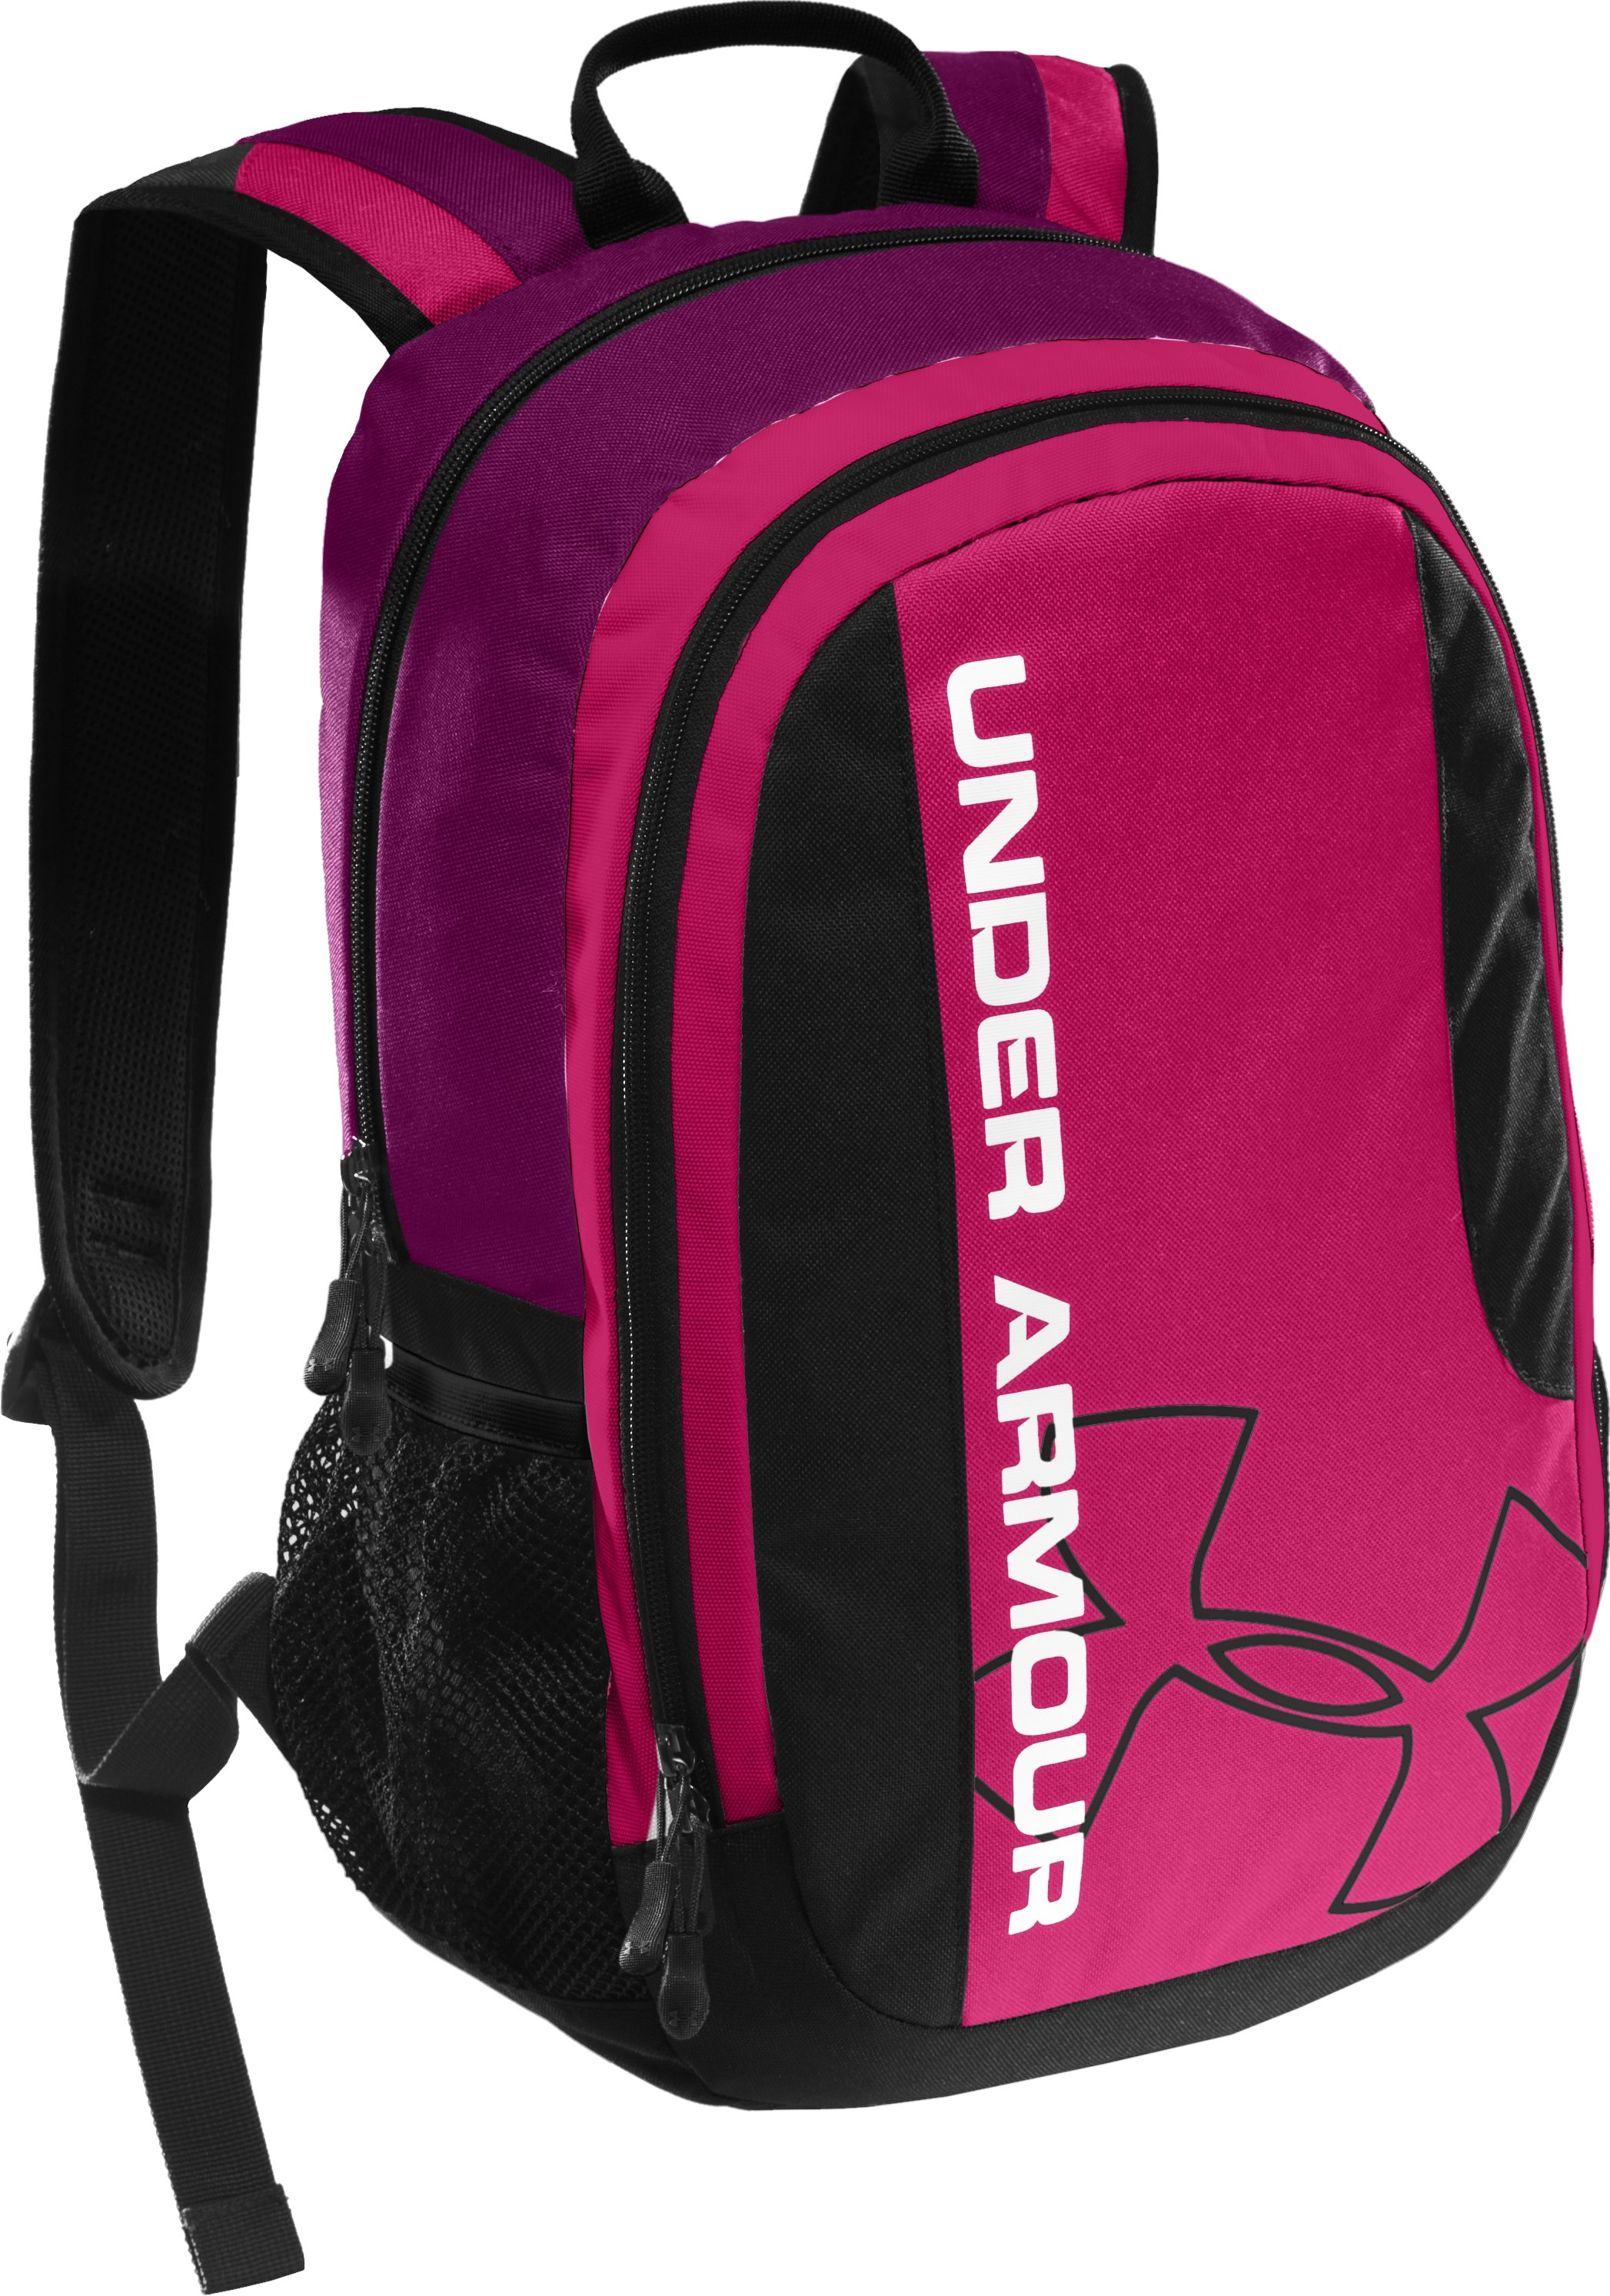 Dauntless Backpack, Beet, zoomed image